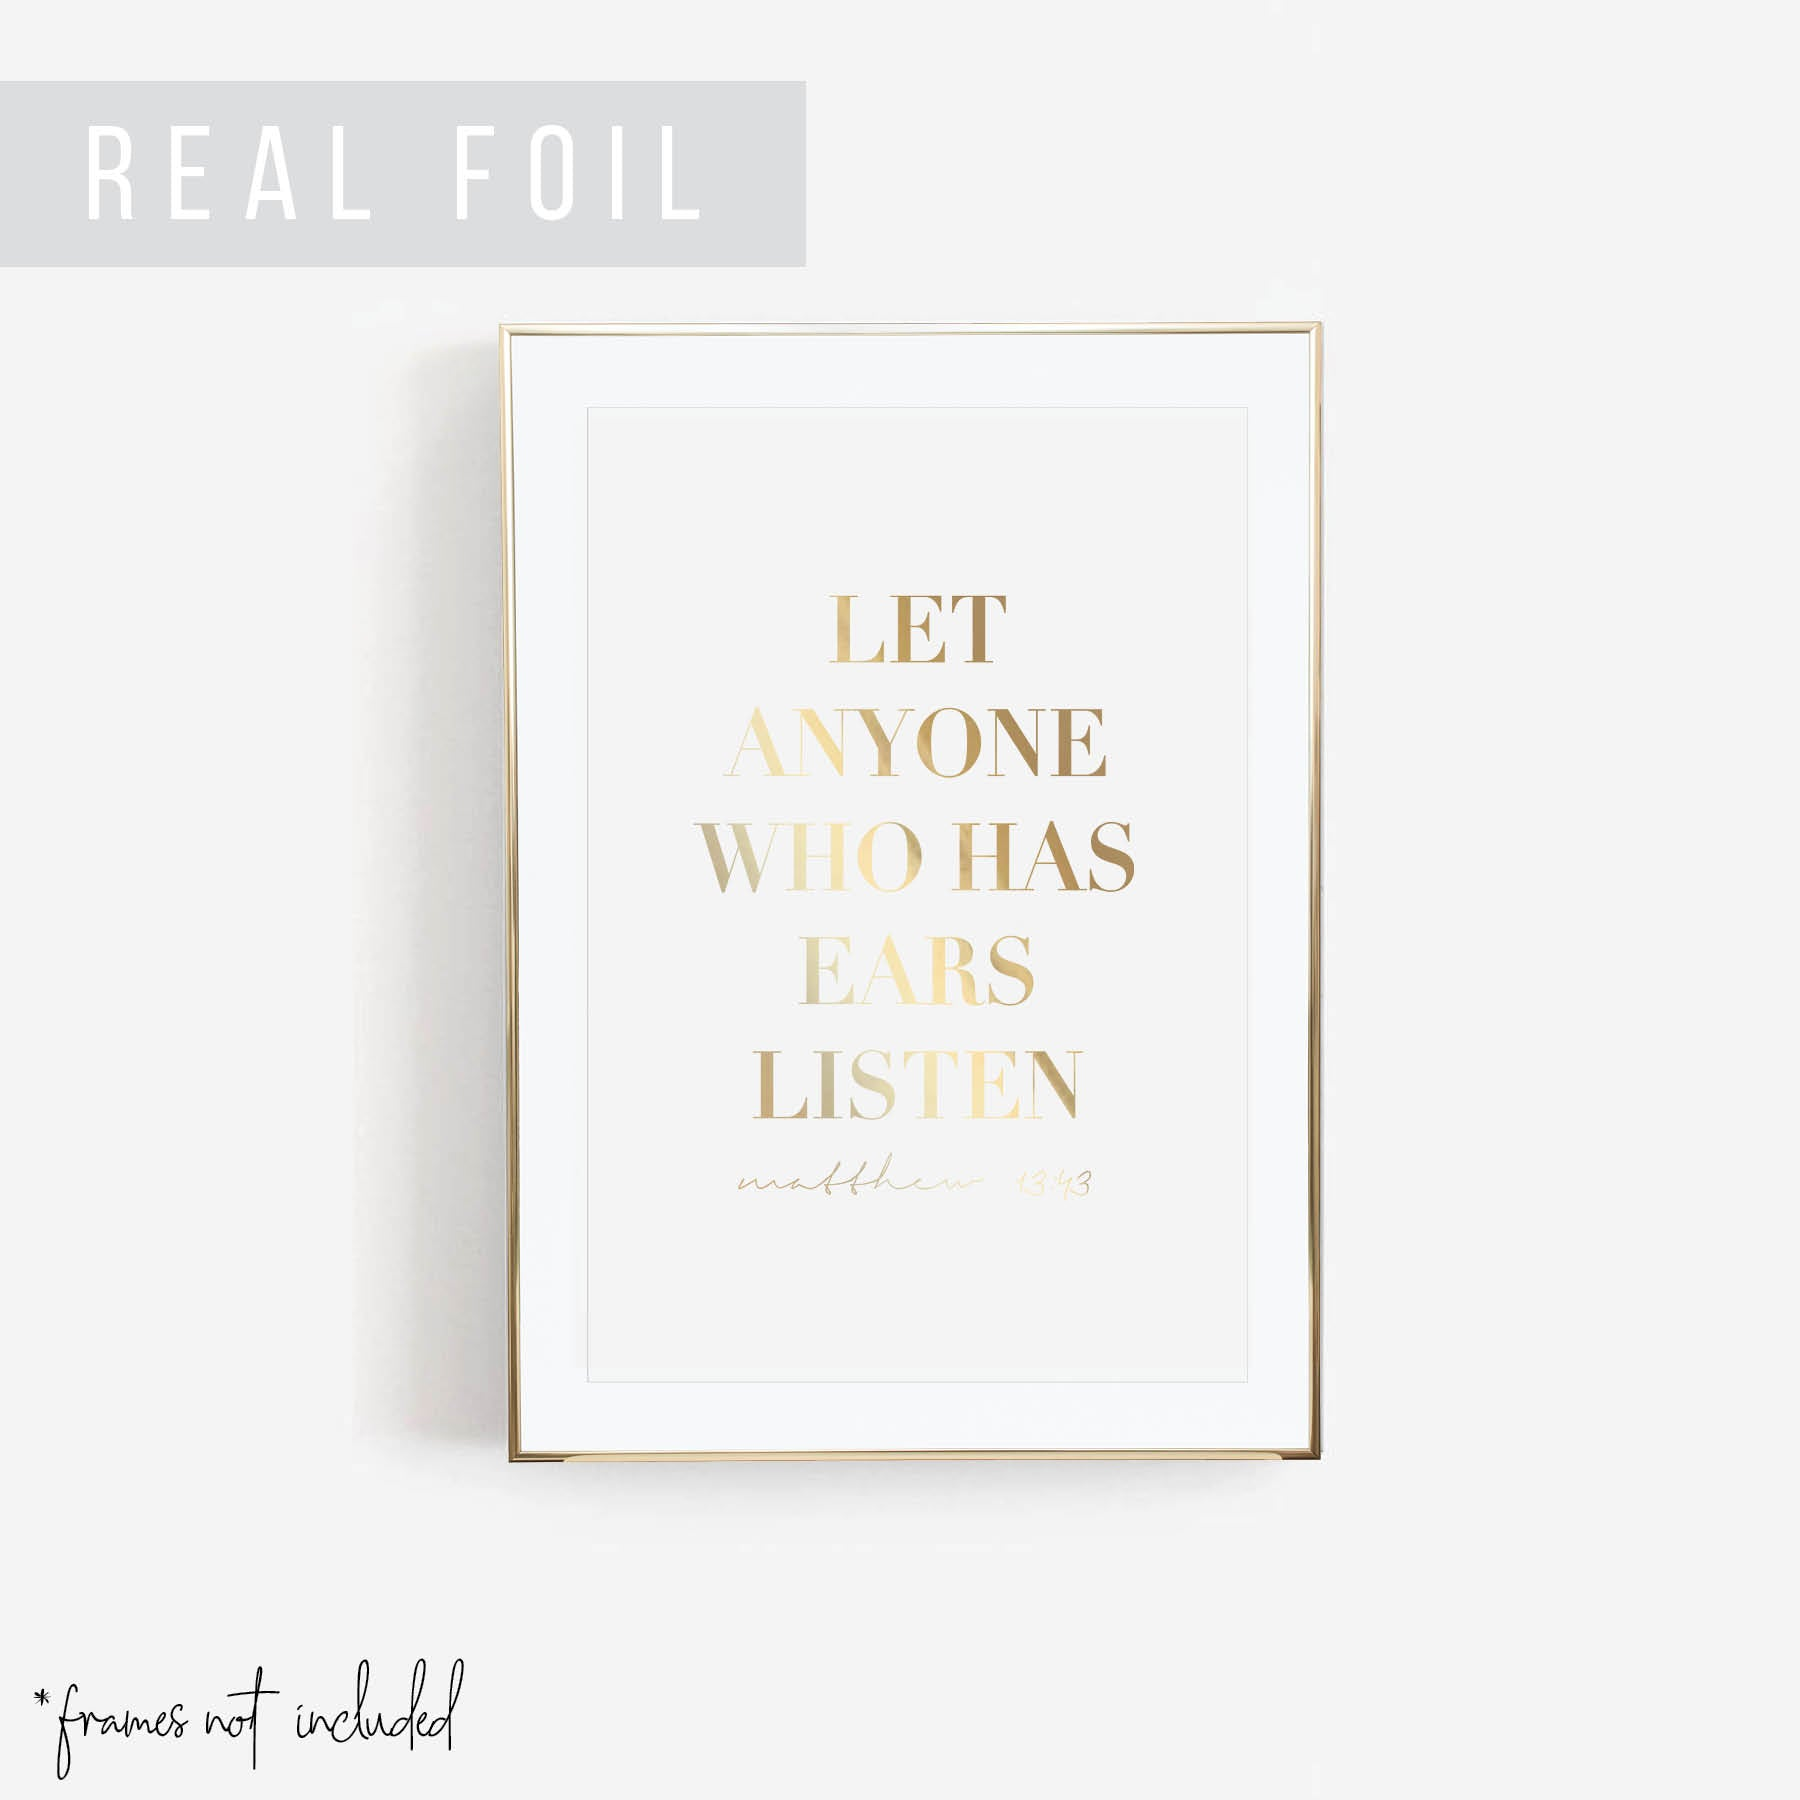 Let Anyone Who Has Ears Listen. -Matthew 13:43 Foiled Art Print